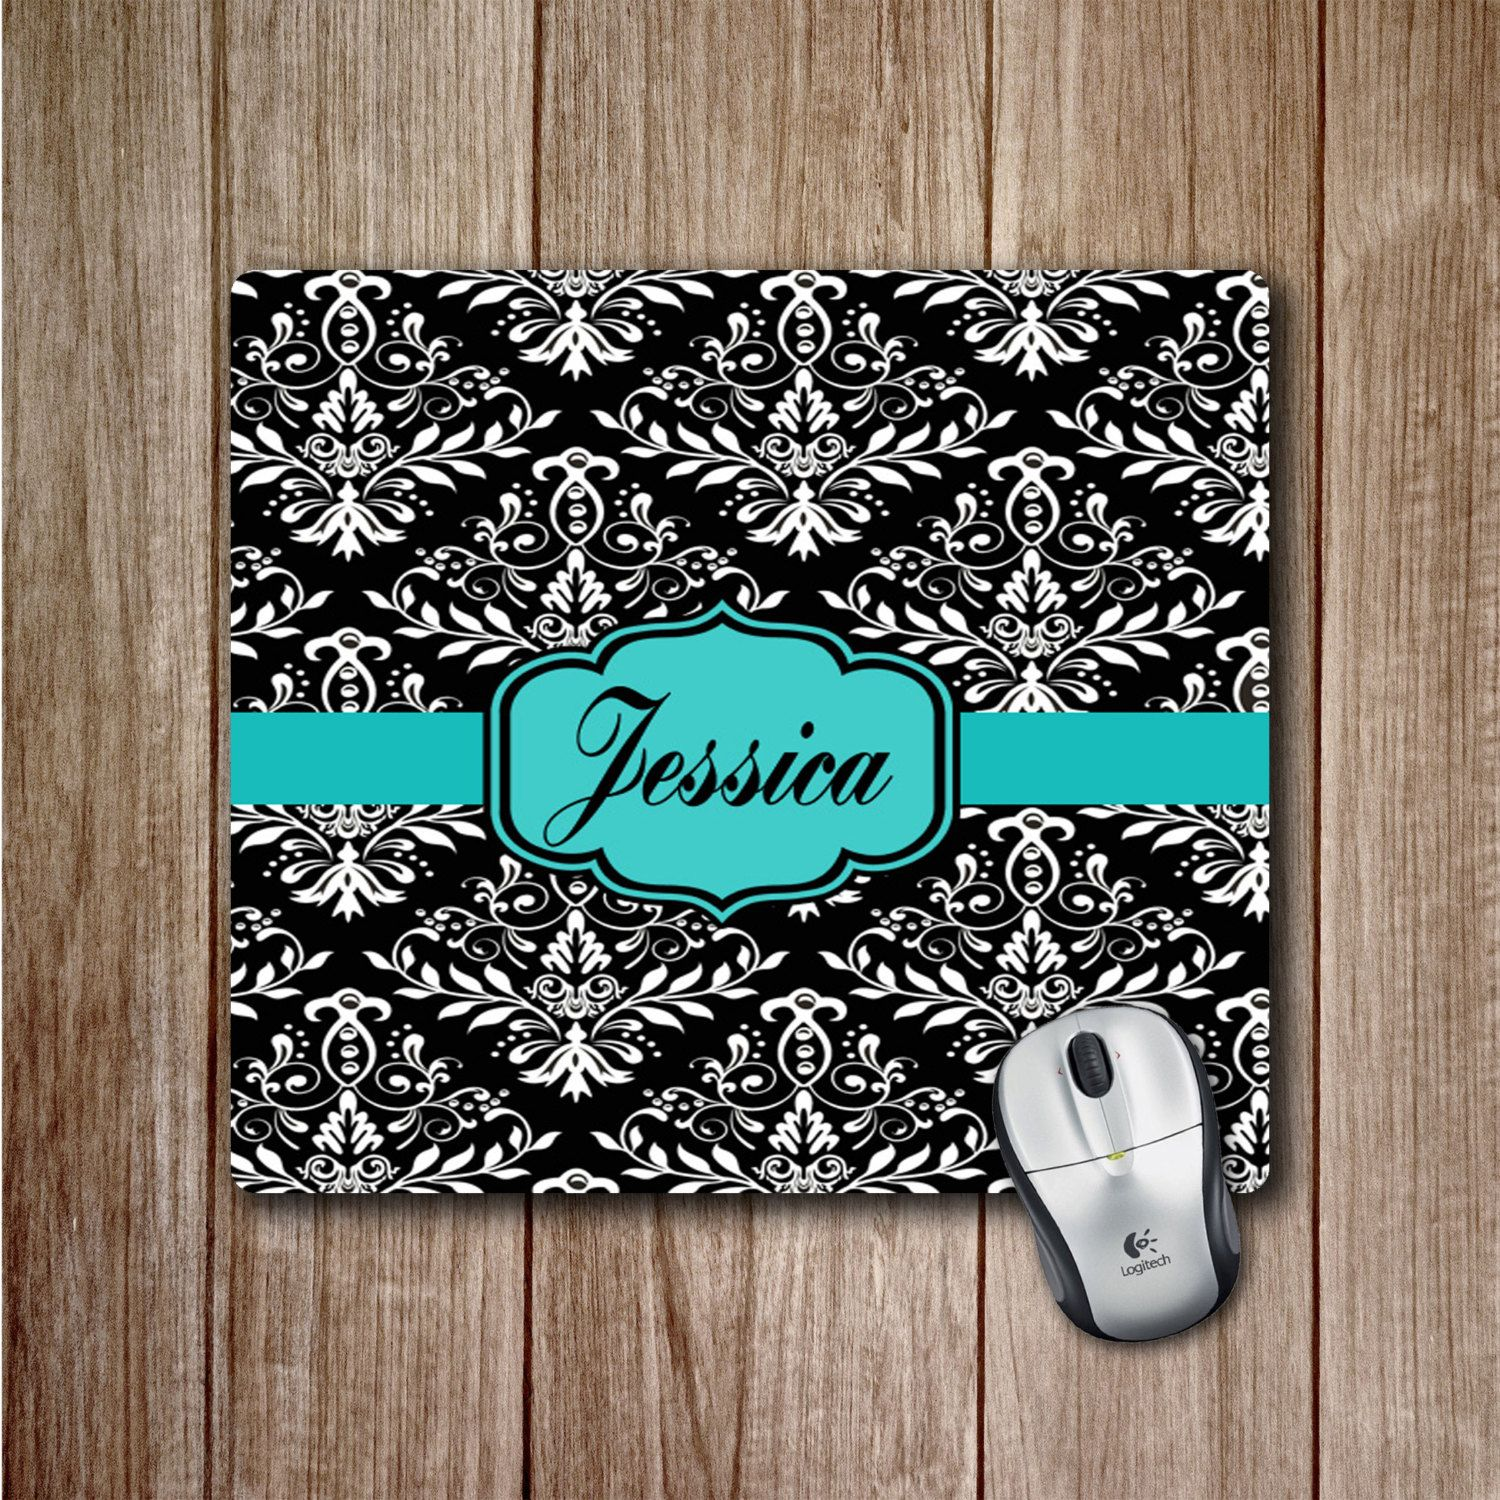 damask office accessories. Monogram Mousepad Black And White Damask Pattern With Teal Accents Personalized Office Accessories Cute Mousepads